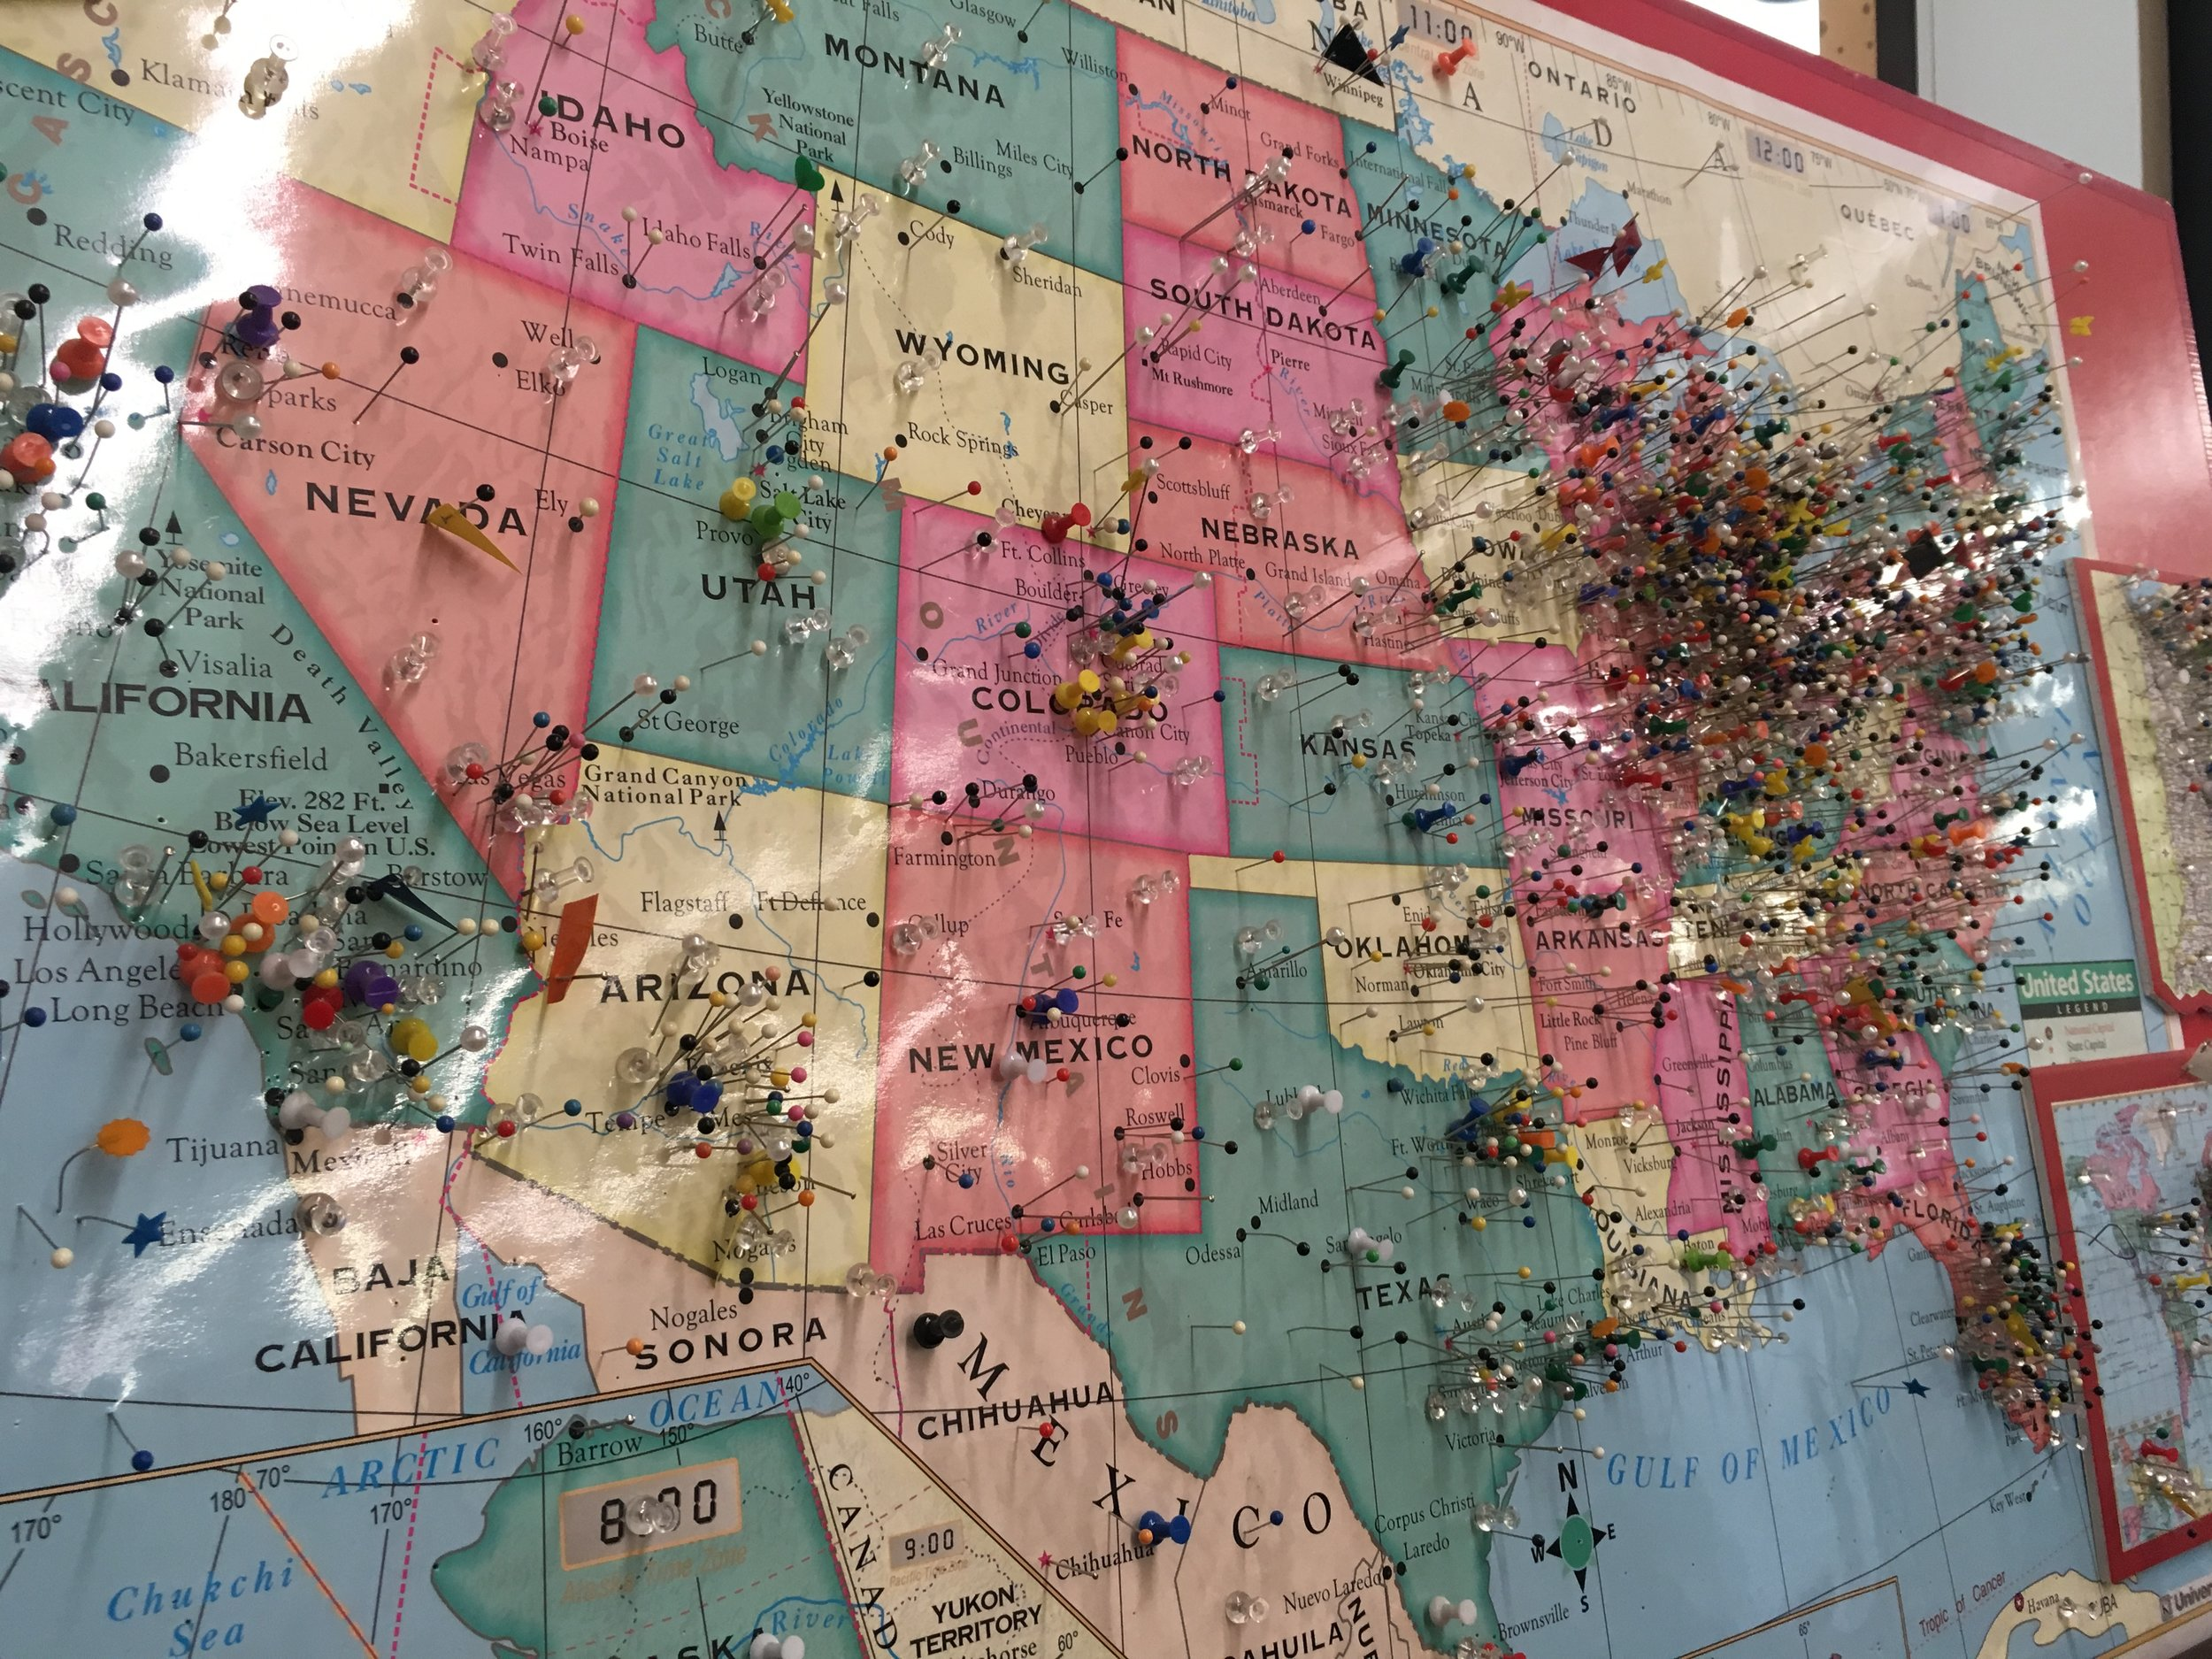 We  WELCOME  your visit the next time you are in  Northern Indiana . We have frequent visitors from all over the US and the World. Be sure to put your pin in our map on your next visit. We have two locations for your convenience, Wakarusa, IN and Mishawaka, IN